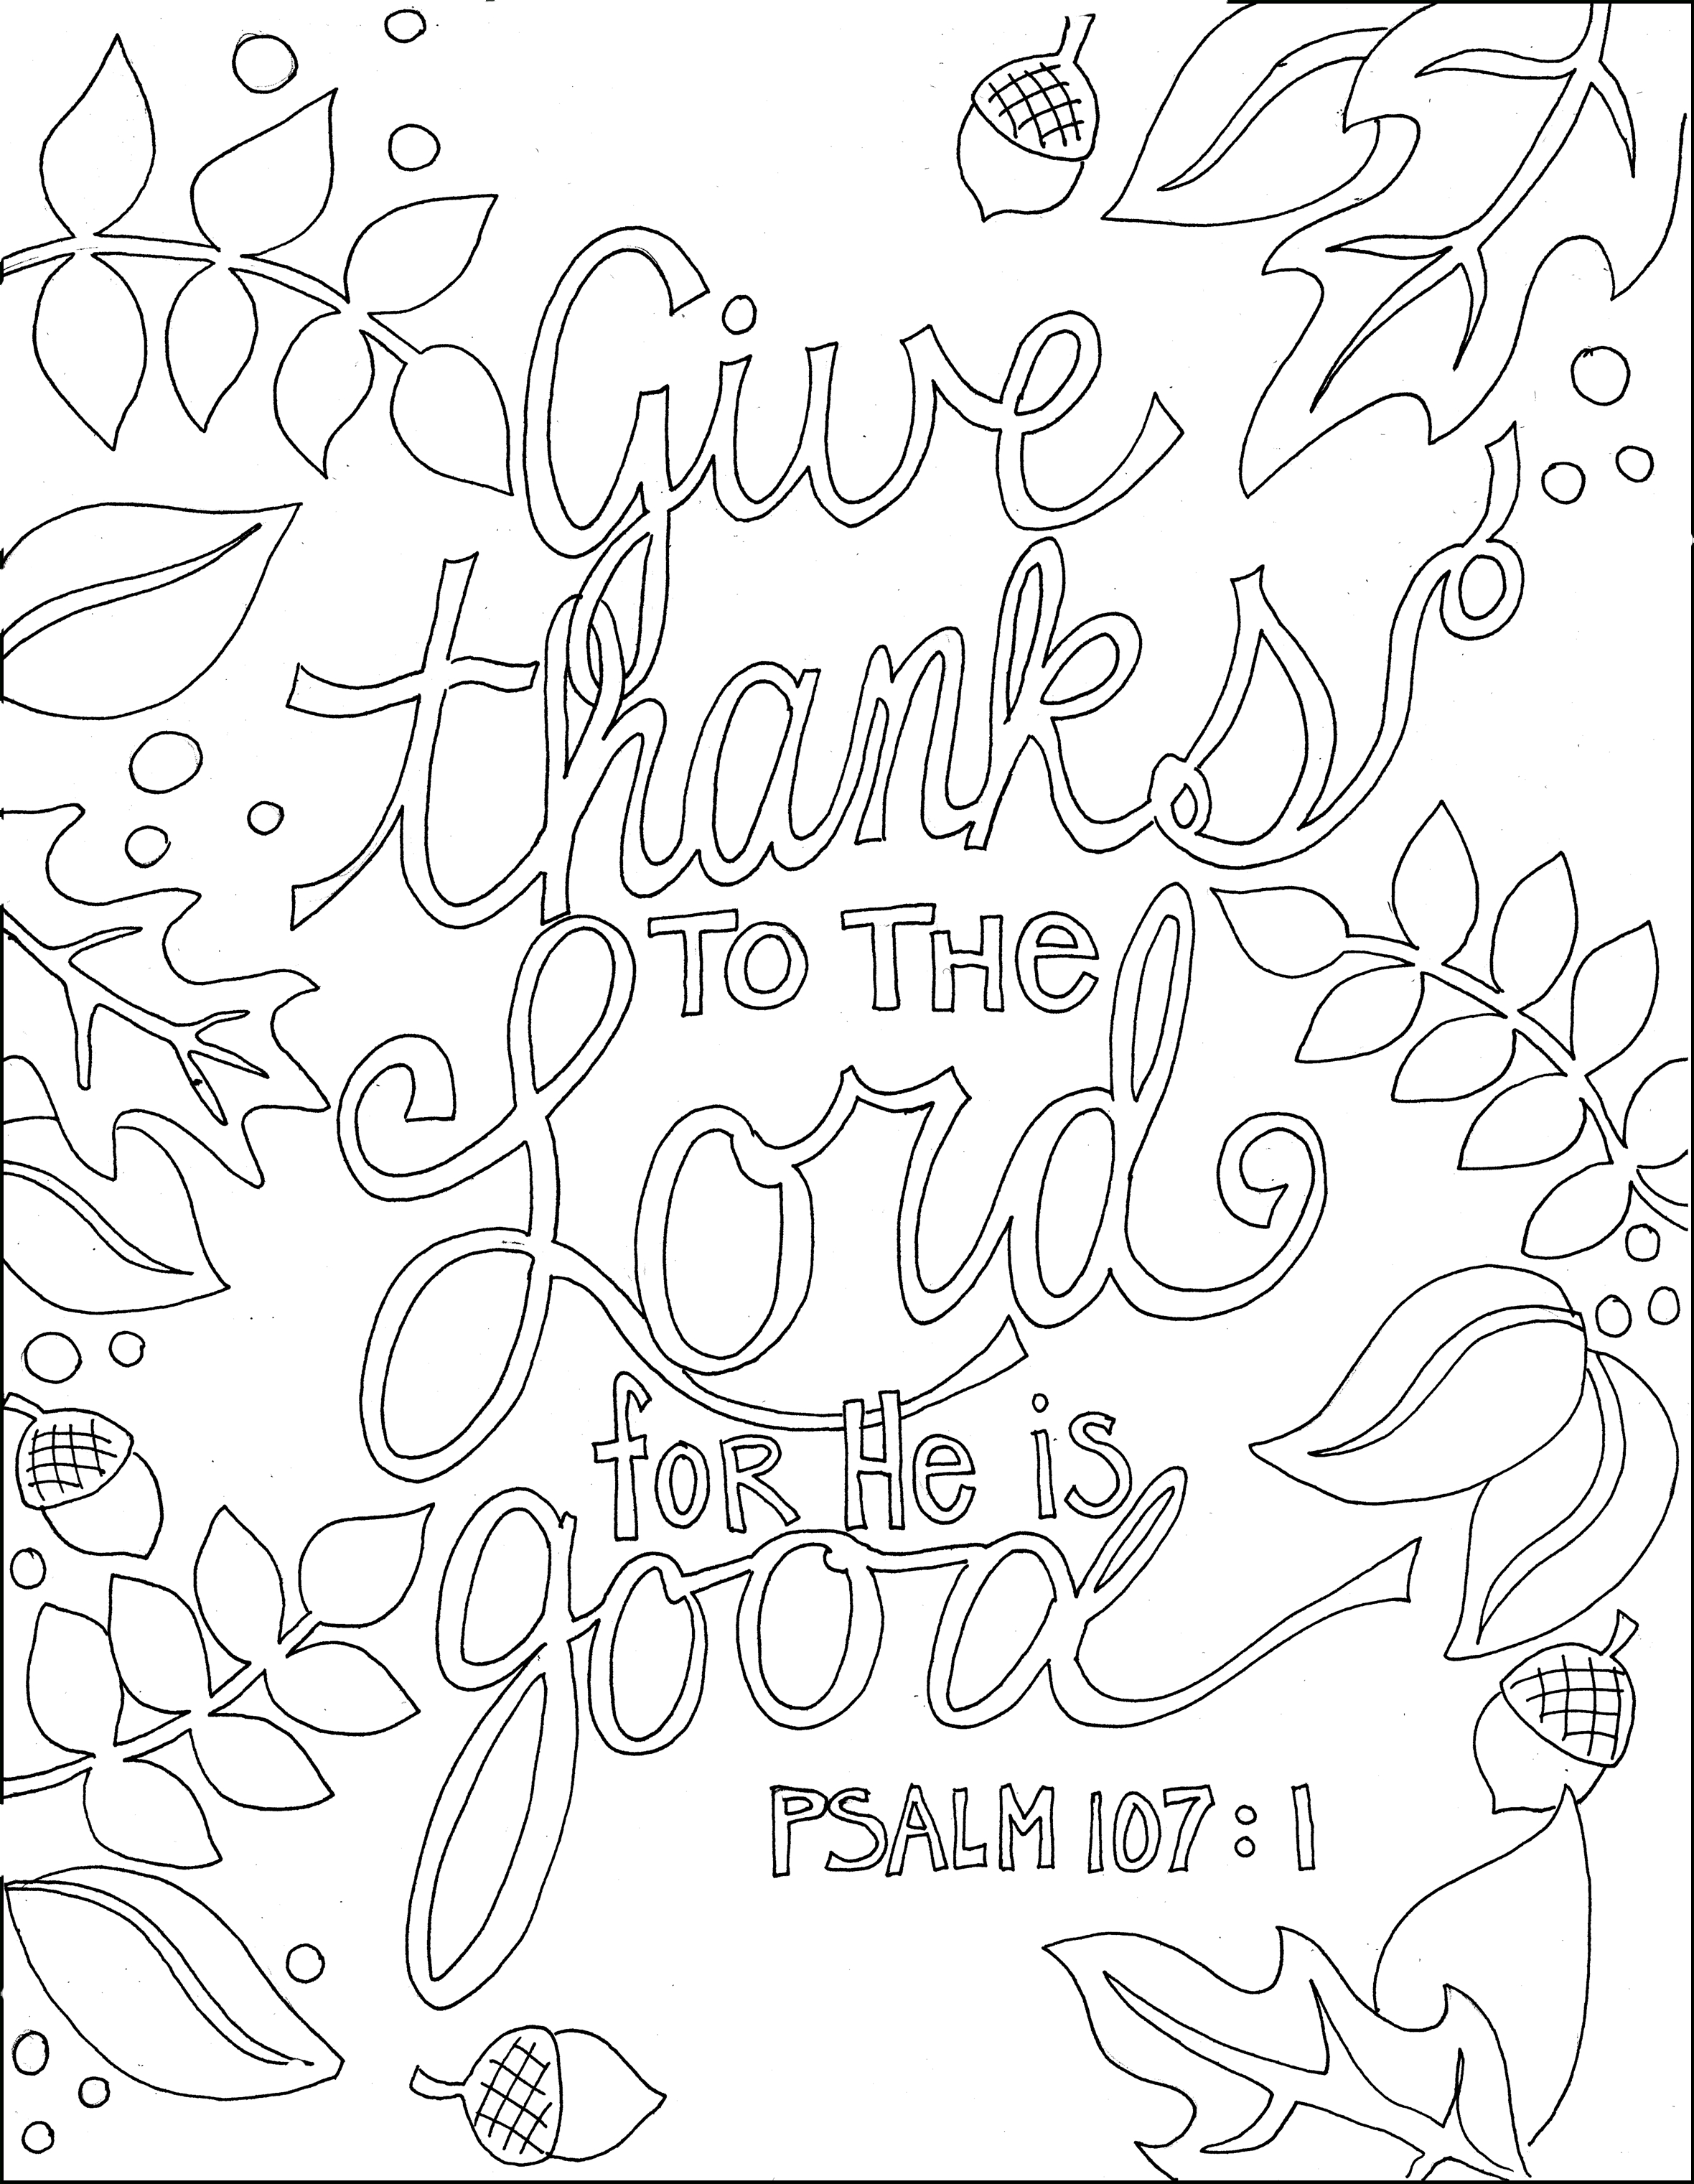 Coloring Book World ~ Free Bible Verse Coloring Pages For Adults - Free Printable Bible Coloring Pages With Verses